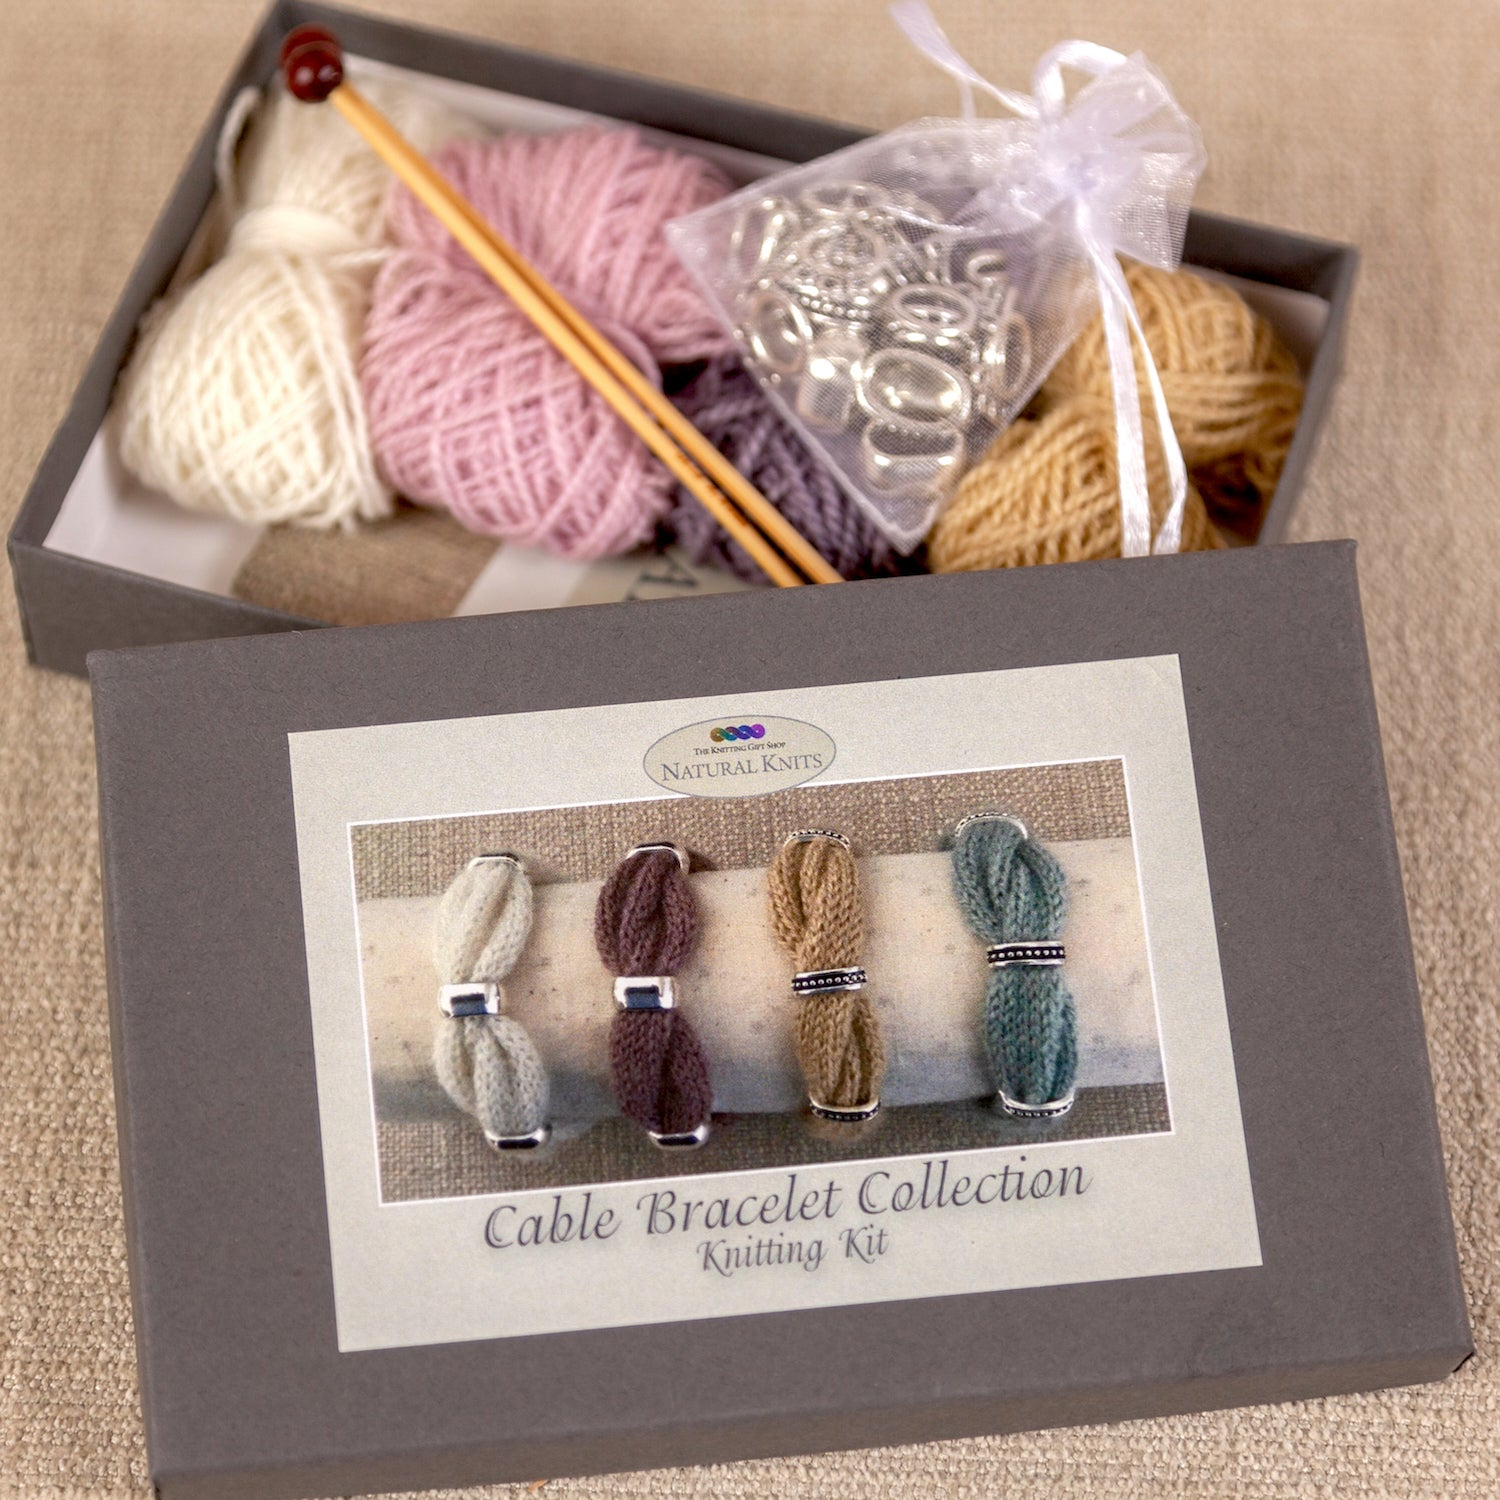 Cable Bracelet Knitting Kit Gift Box